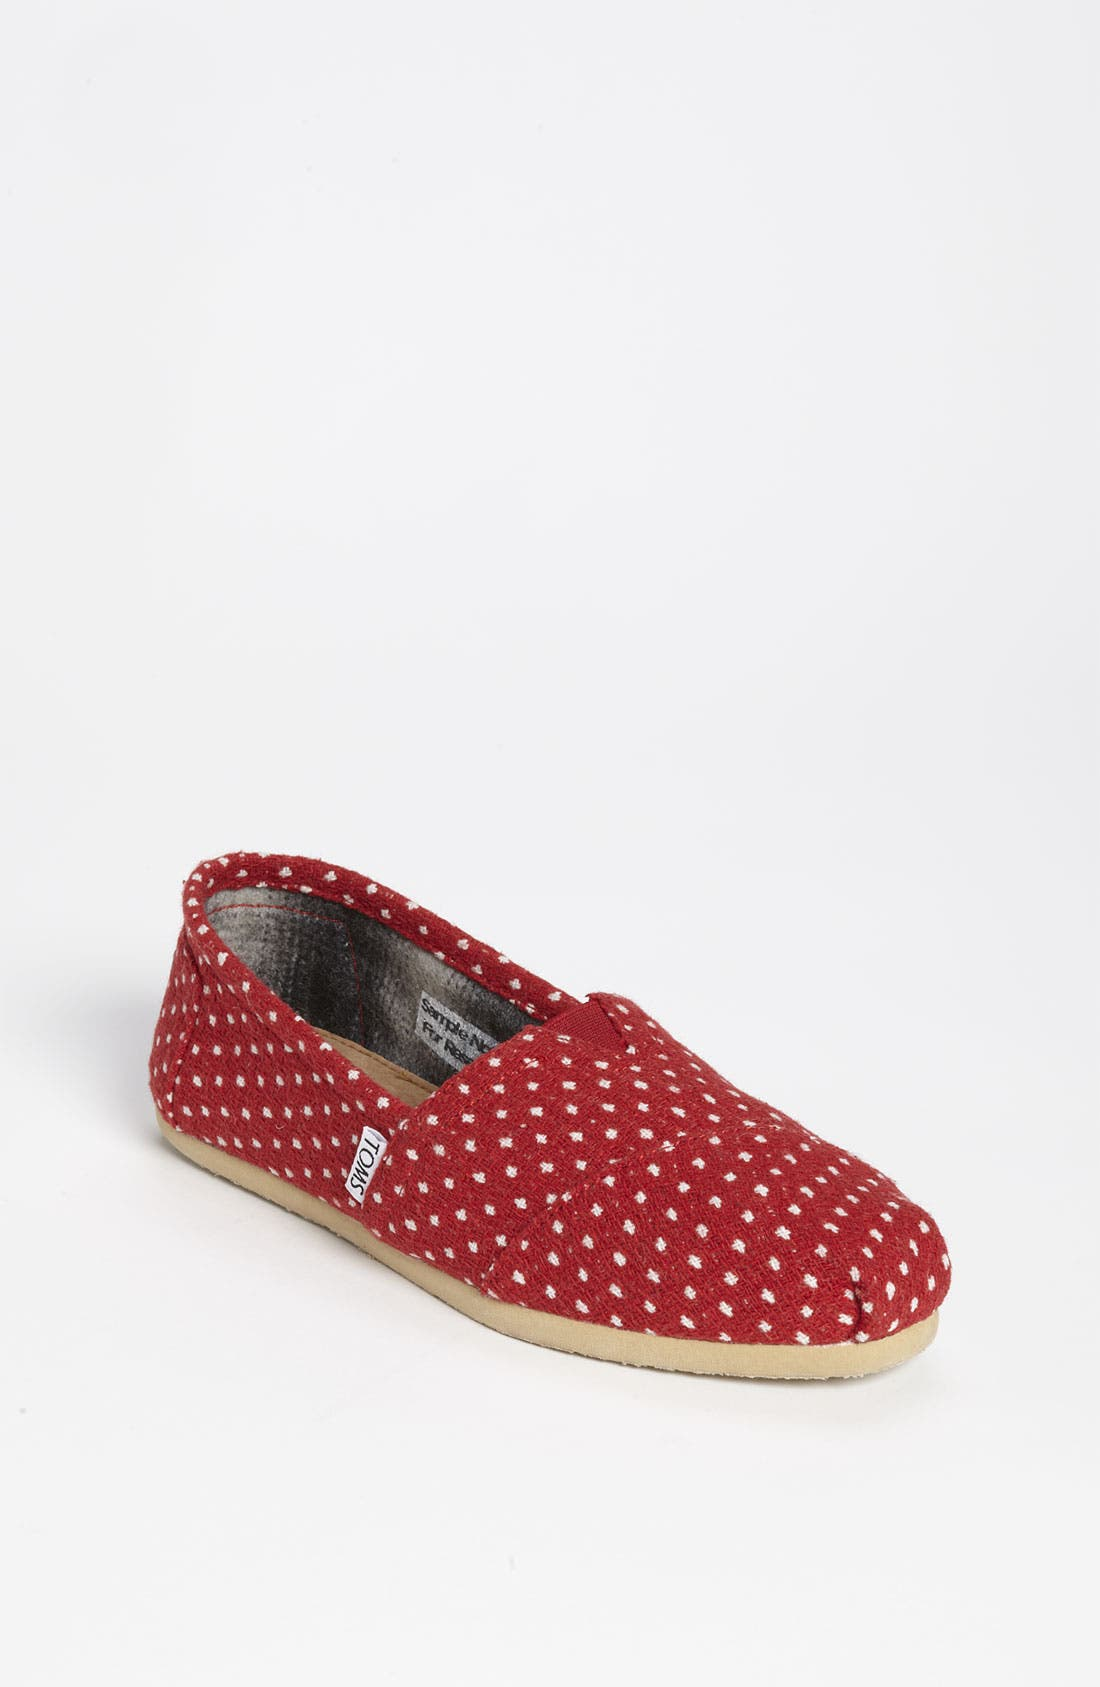 Alternate Image 1 Selected - TOMS 'Classic - Dot' Woolen Slip-On (Women)